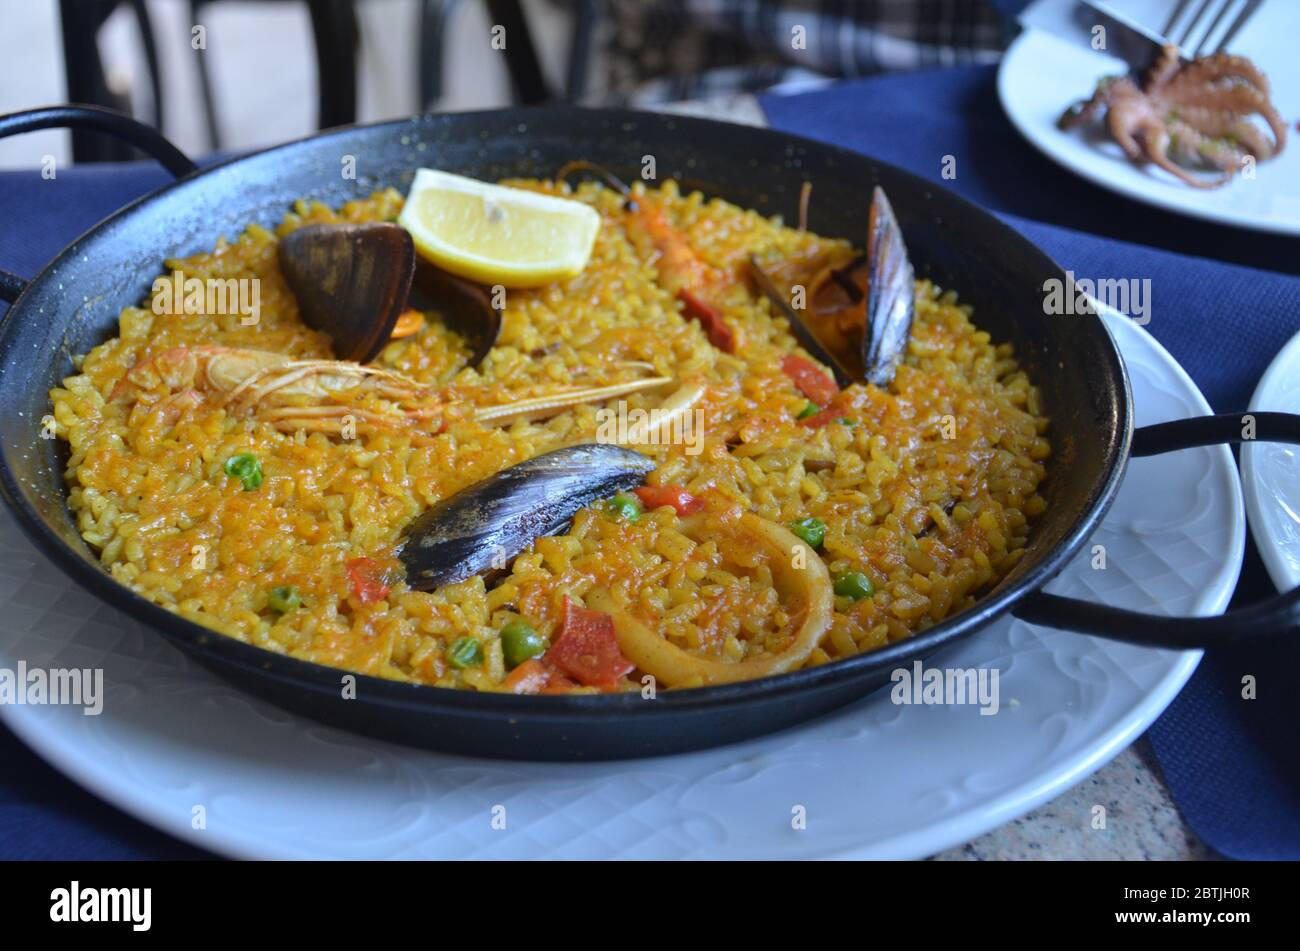 Paella is a Spanish rice dish originally from Valencia. Seafood paella from a local cafe at Barcelona. Stock Photo